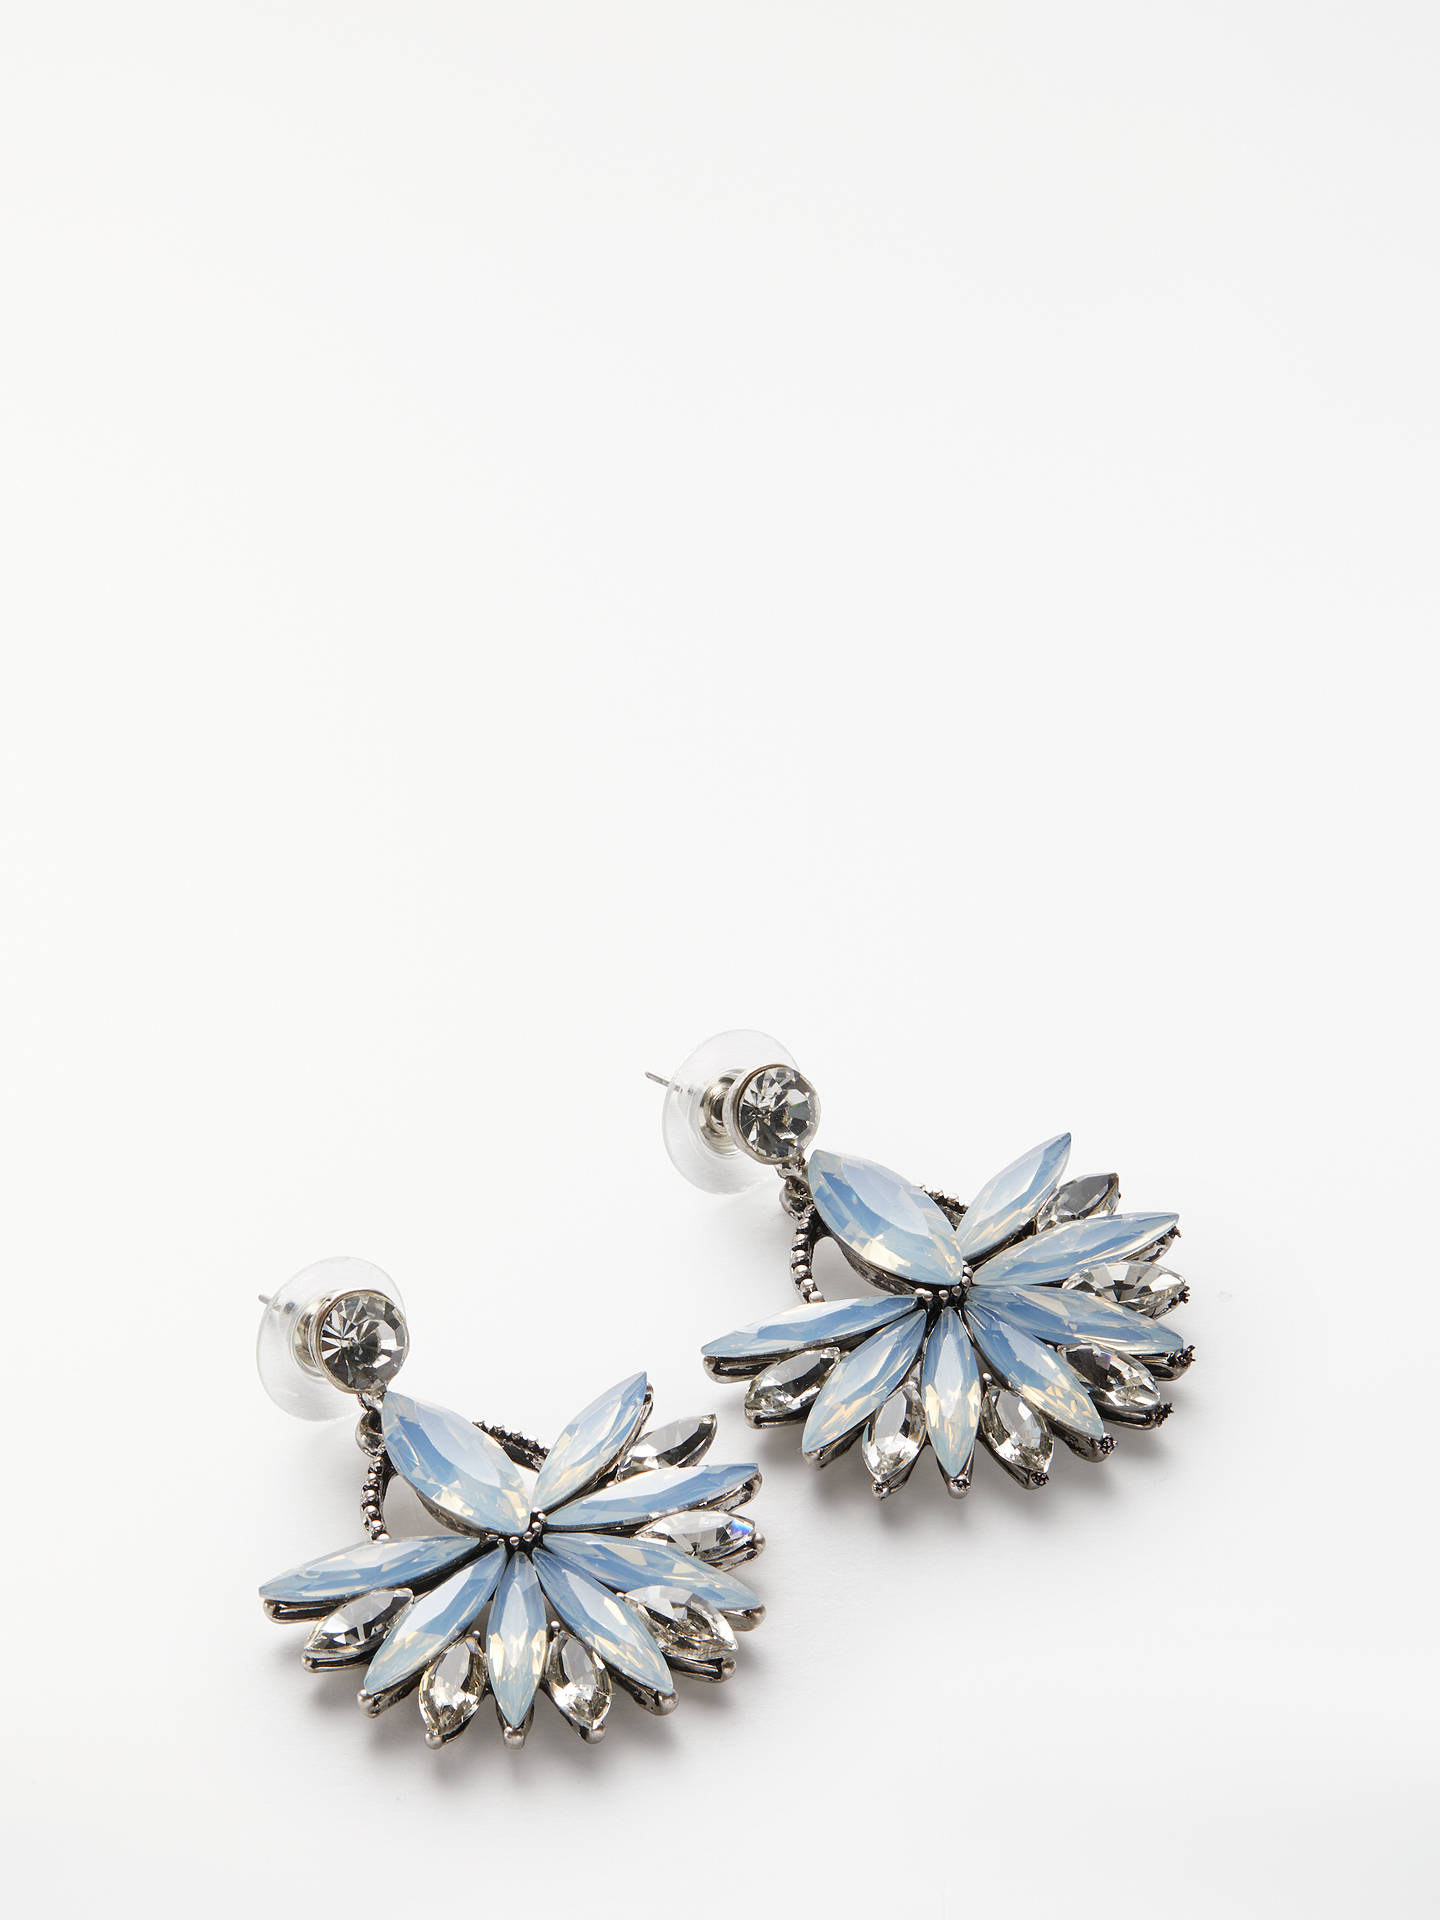 BuyJohn Lewis & Partners Crystal Statement Drop Earrings, Silver Online at johnlewis.com